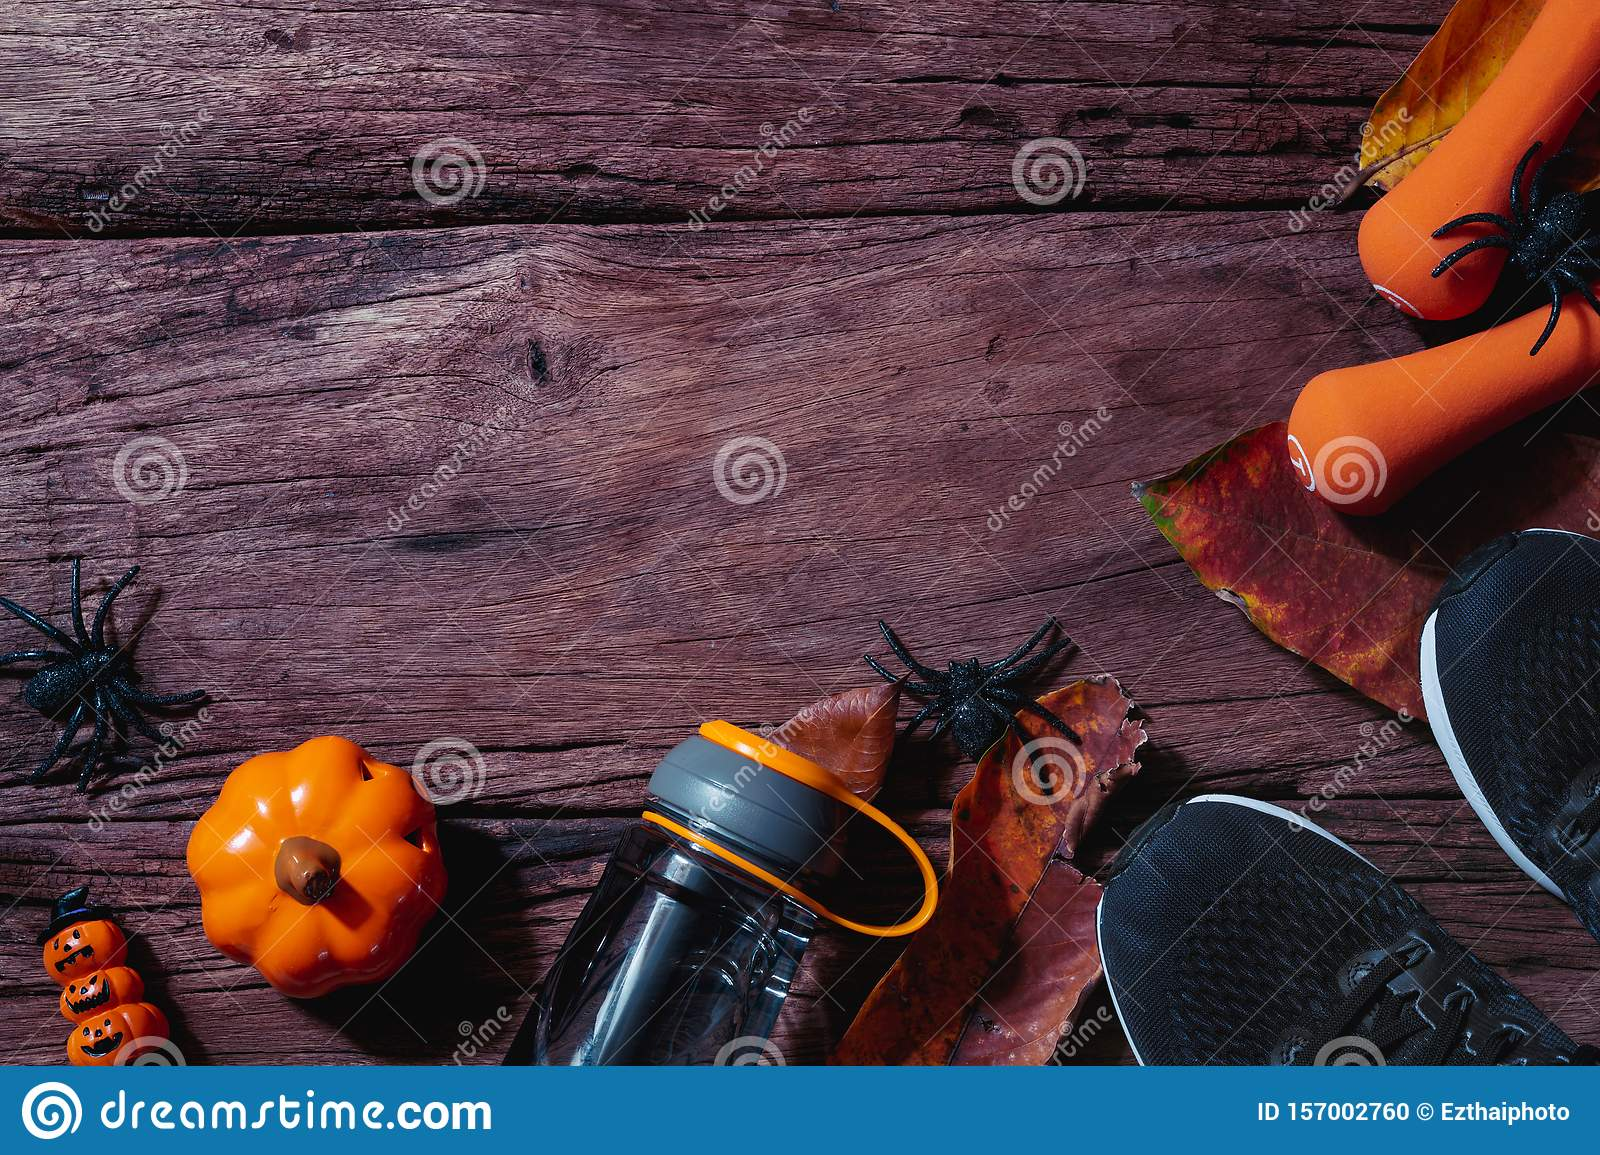 Happy Halloween day with Fitness, Exercise, Working out healthy lifestyle background concept. Flat lay Top view with copy space